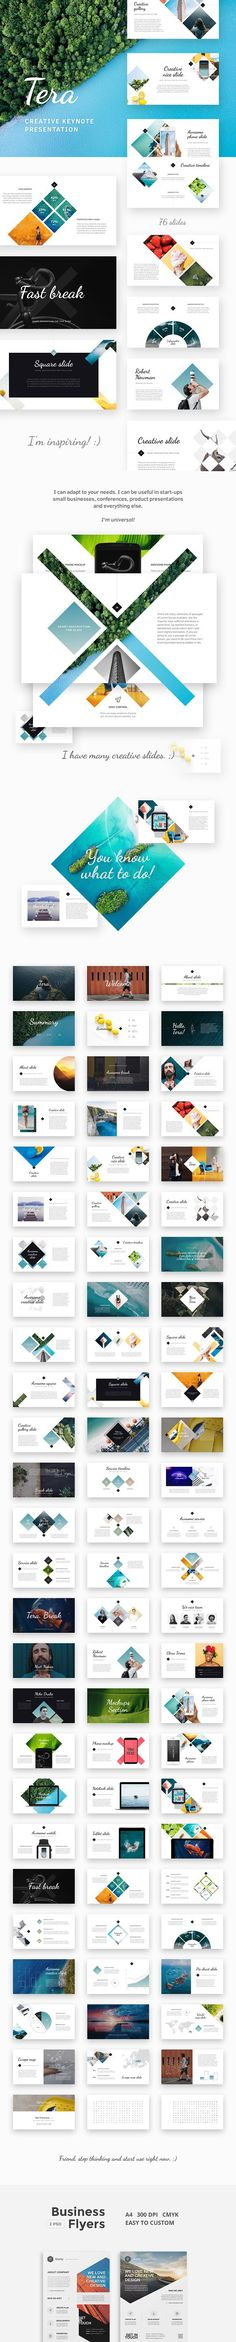 Tera - Creative Keynote Template. Presentation Templates